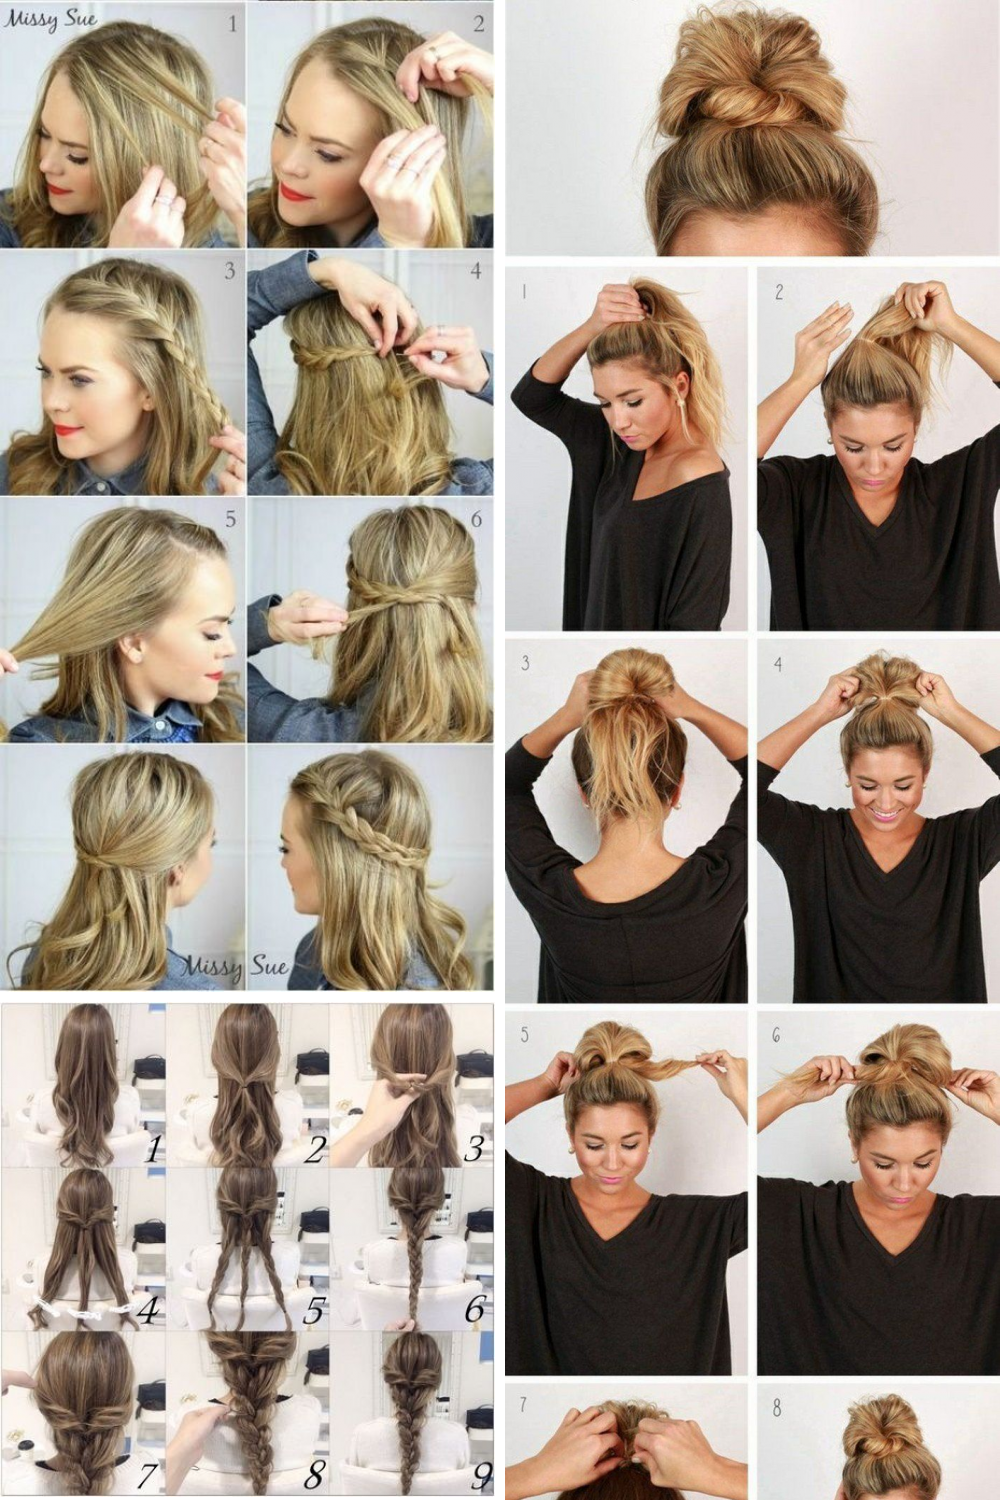 18 Stylish Everyday Hairstyle Pictures Ideas Nurse Hairstyles Everyday Hairstyles Work Hairstyles